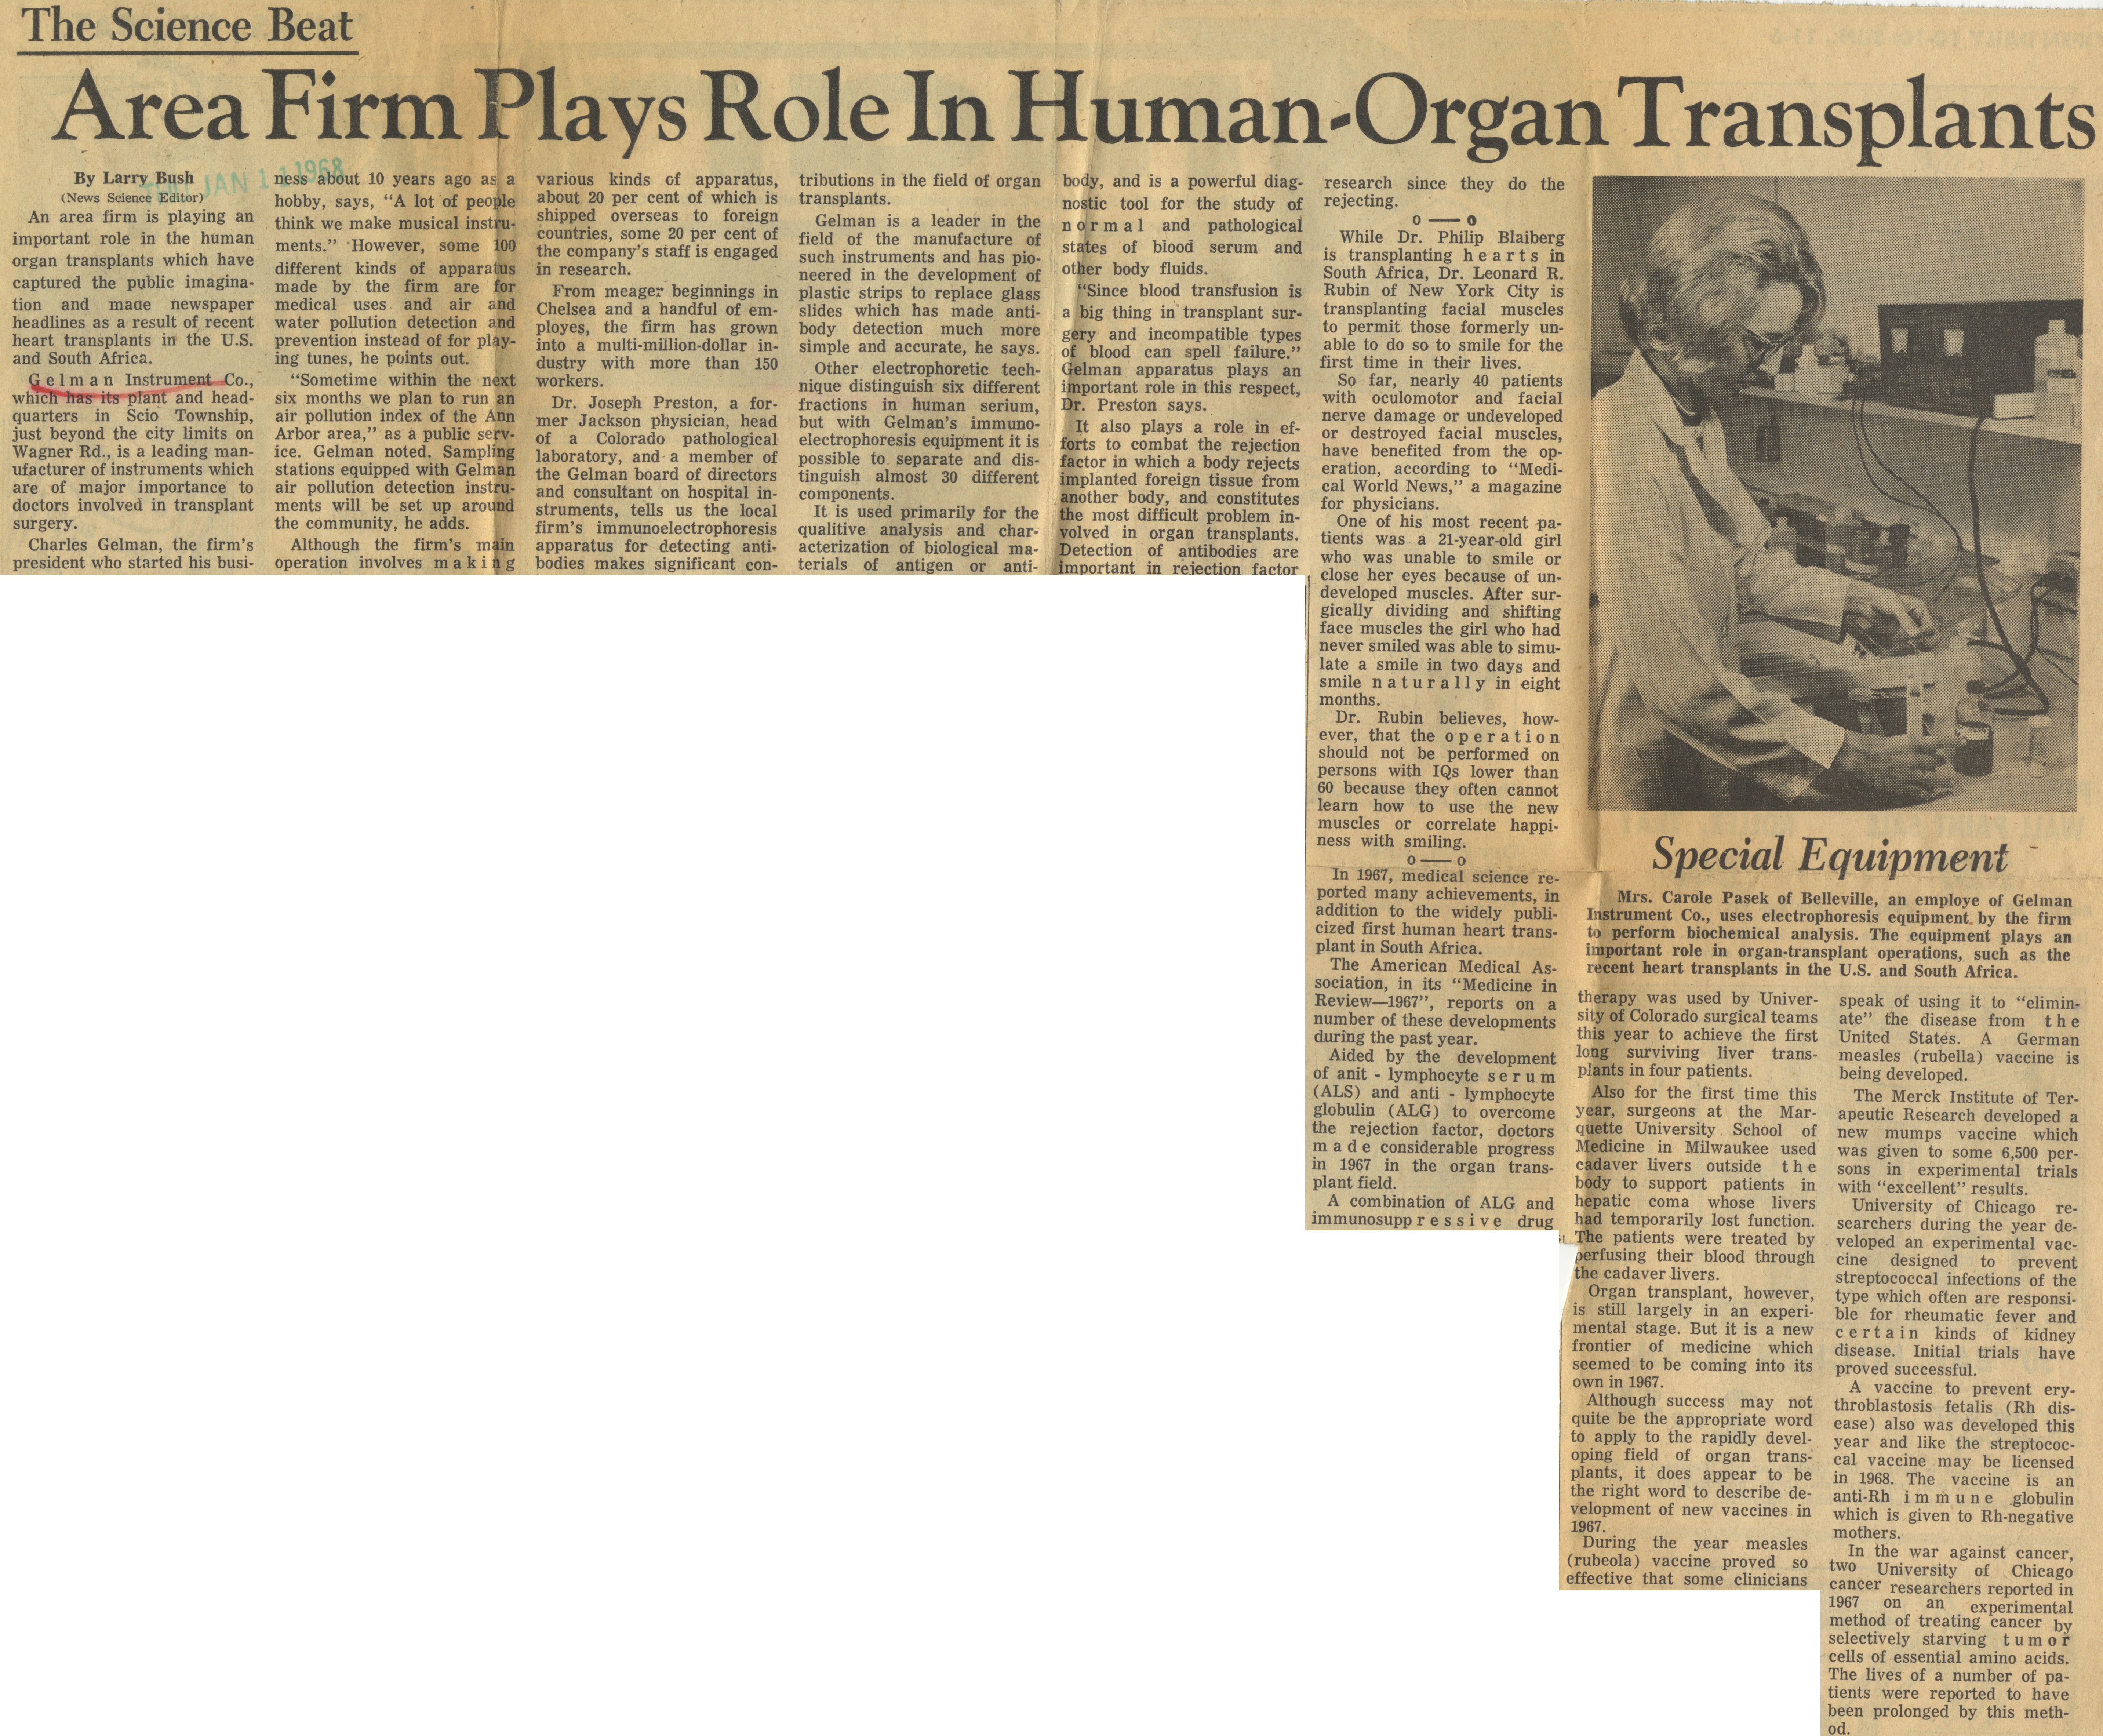 Area Firm Plays Role In Human-Organ Transplants image